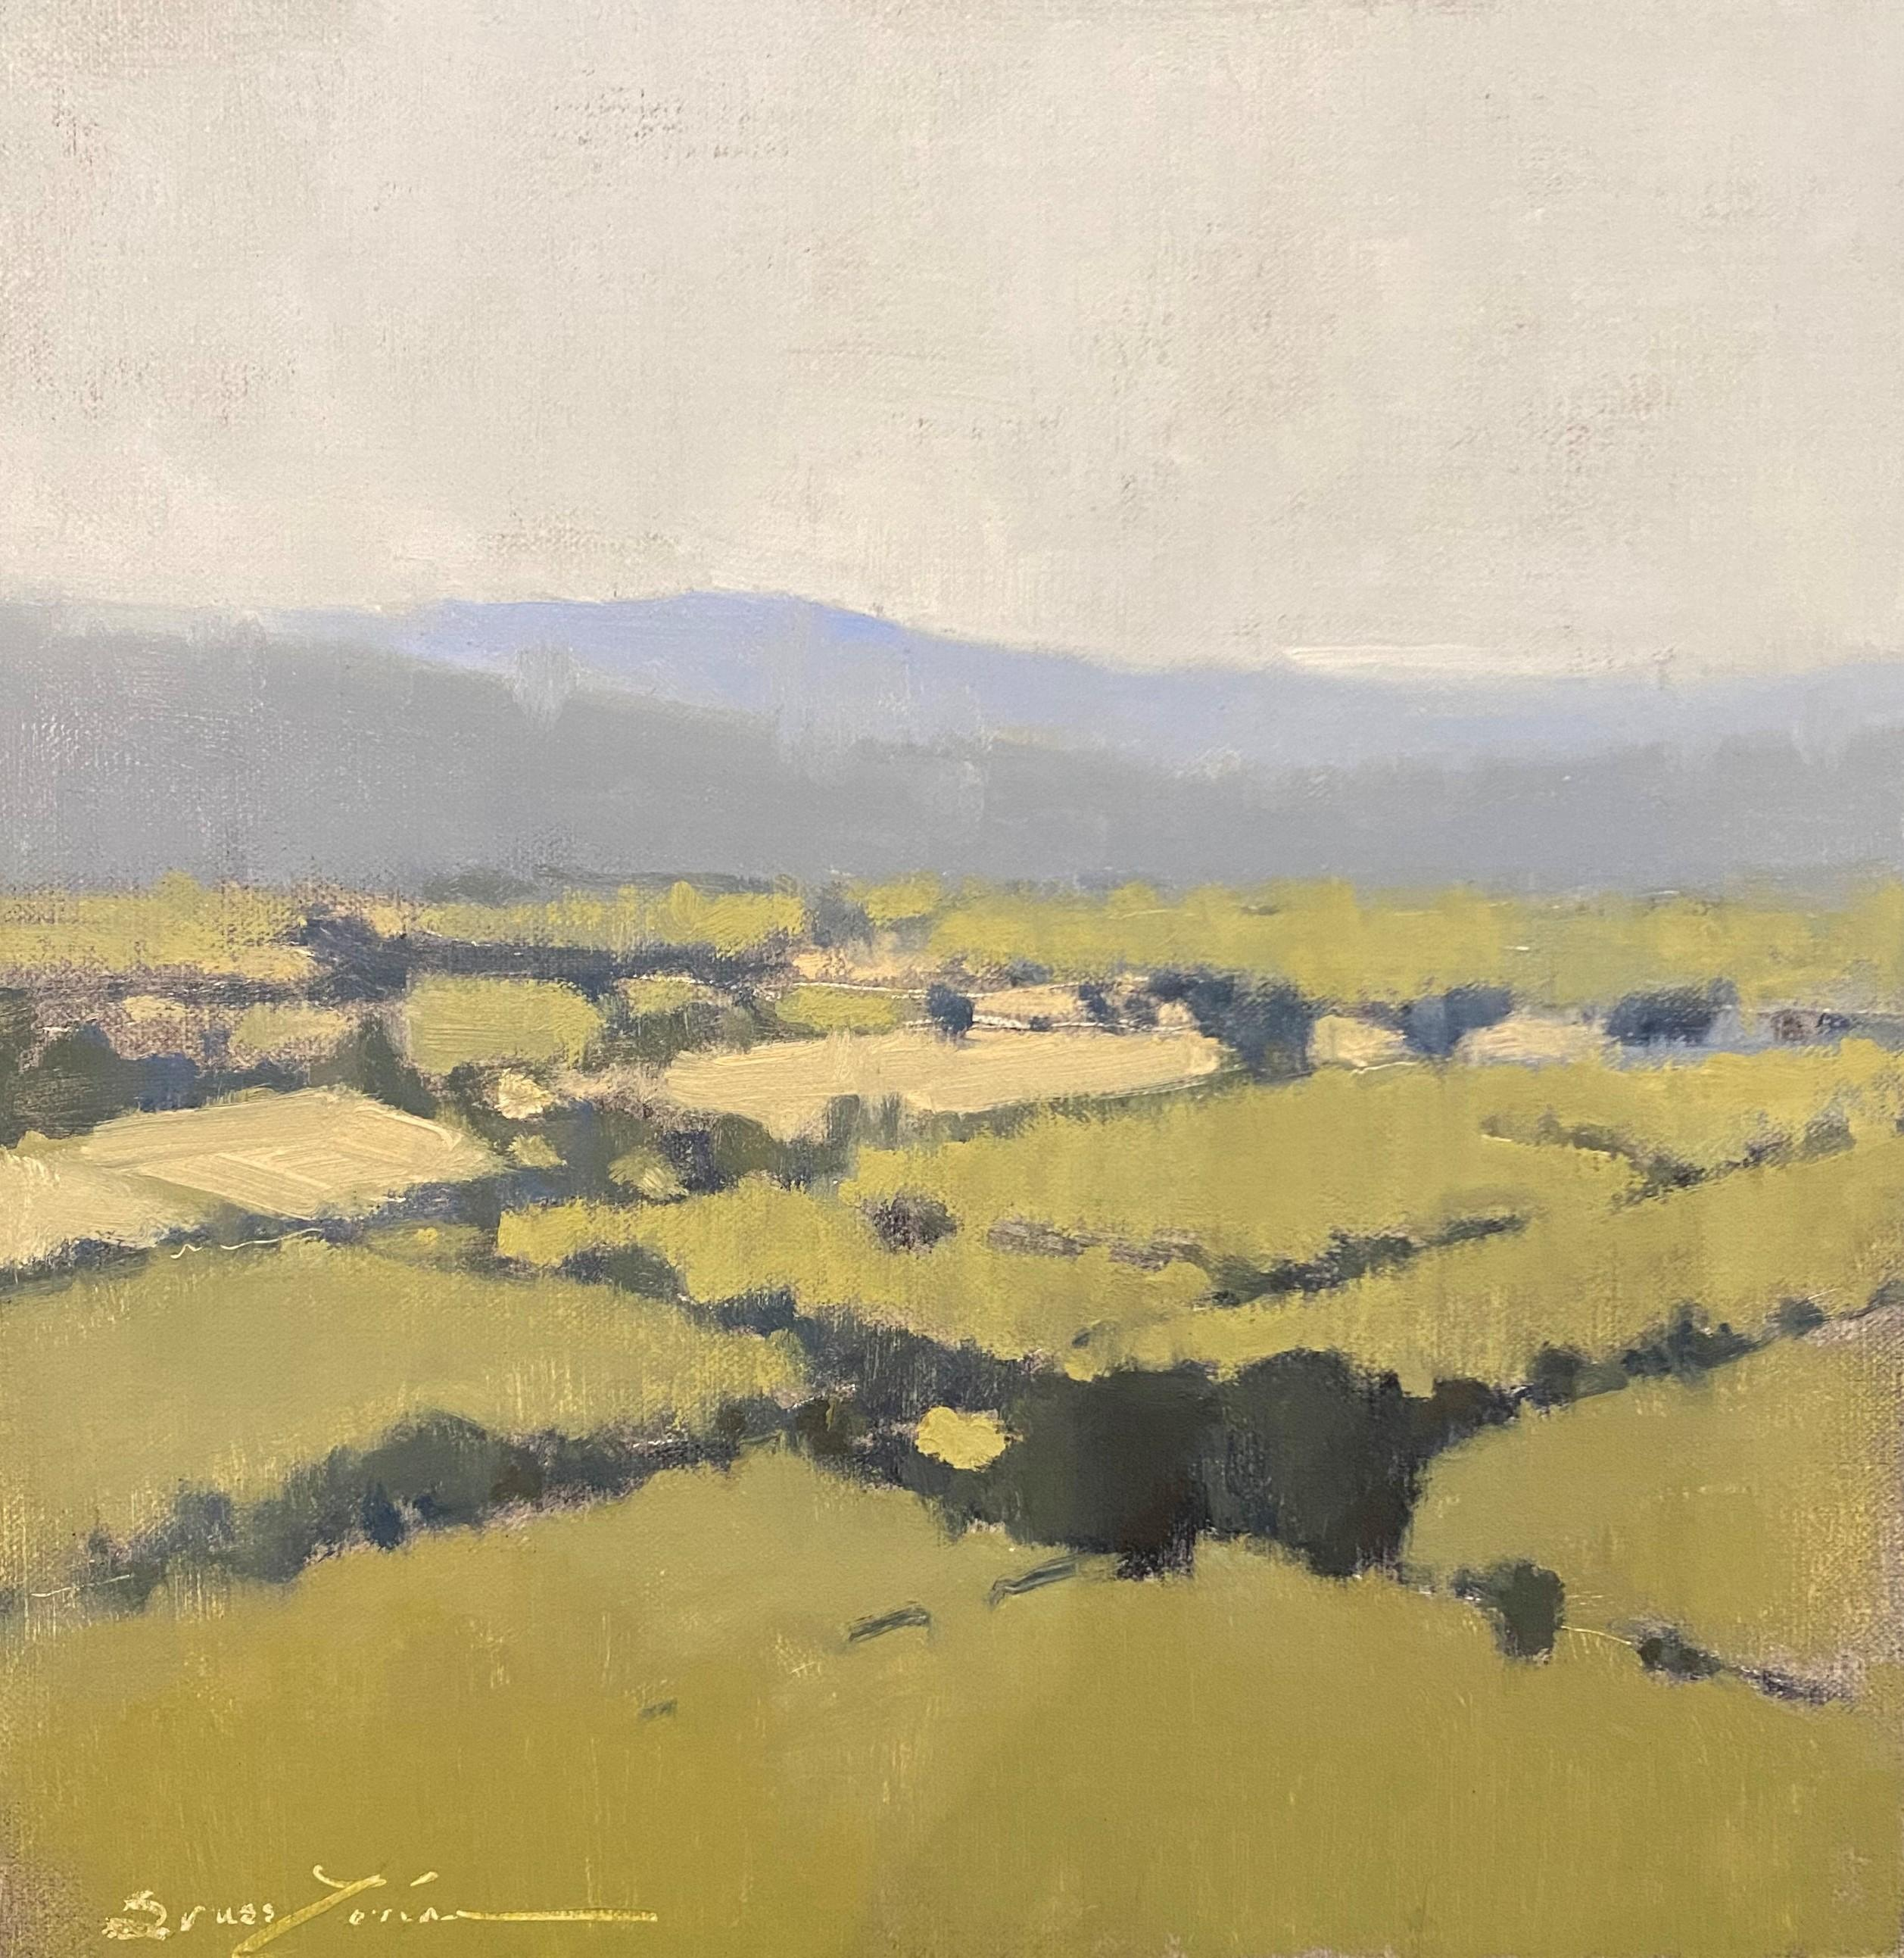 Sweeping Luberon Views by Sherrie Russ Levine, Landscape Painting, Blue, Green